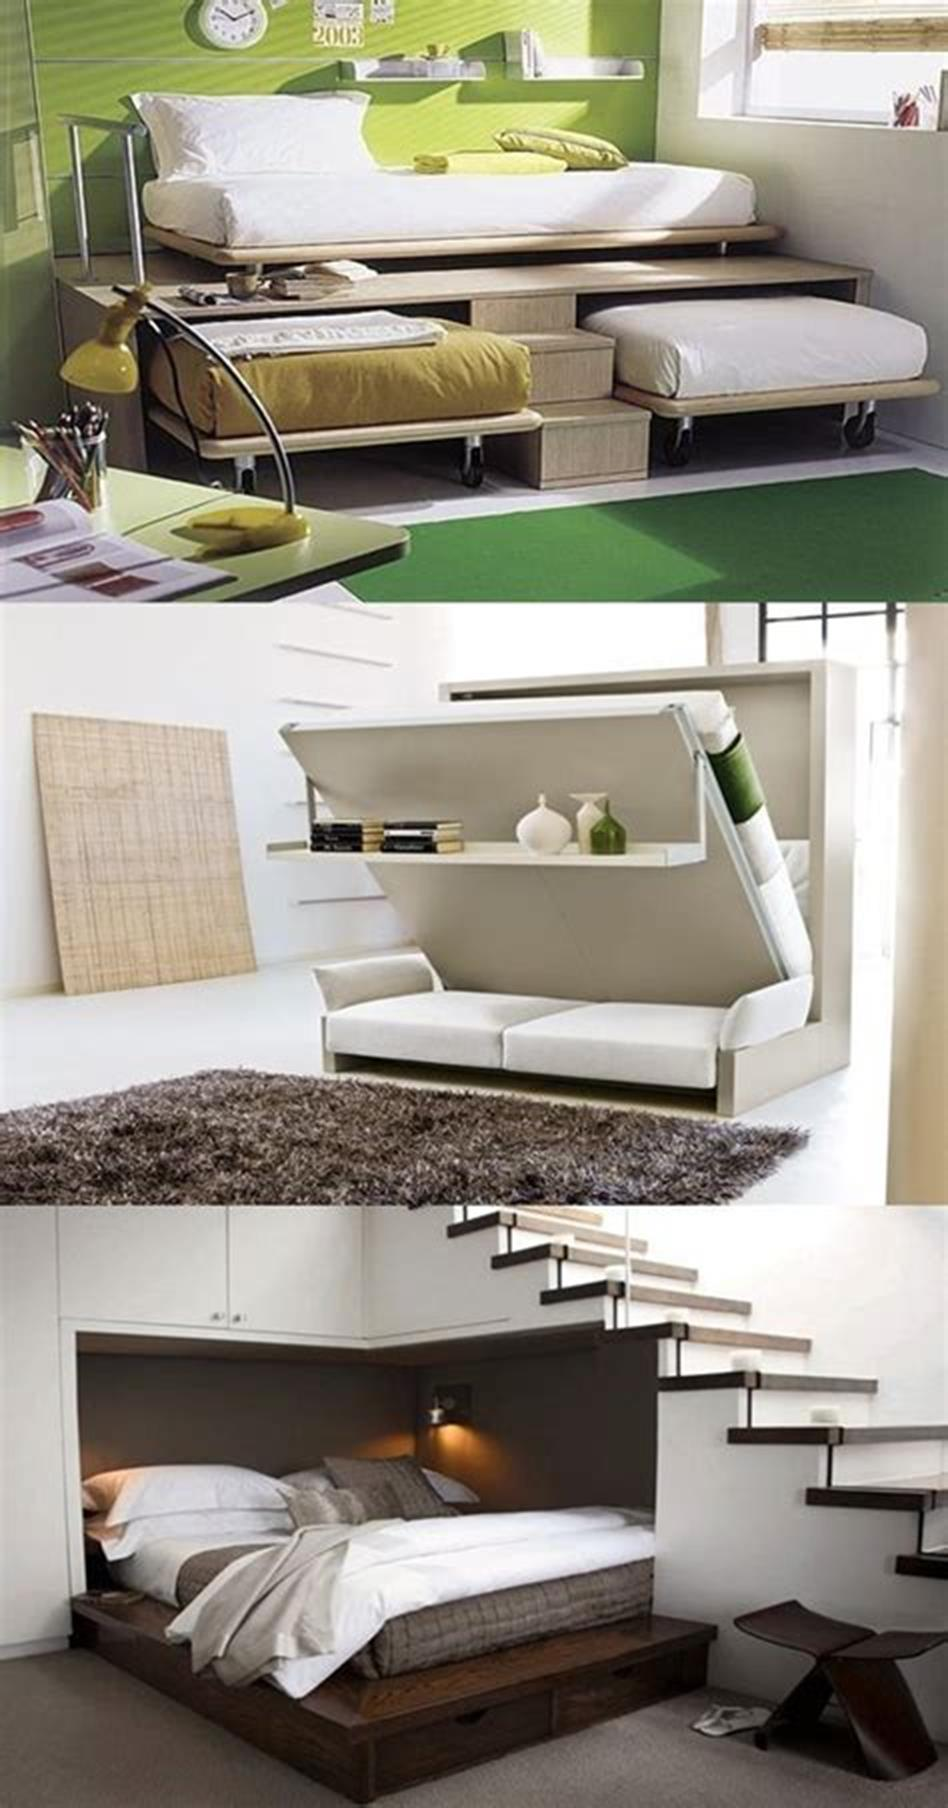 50 Amazing Ideas Furniture for Small Spaces Youll Love 4